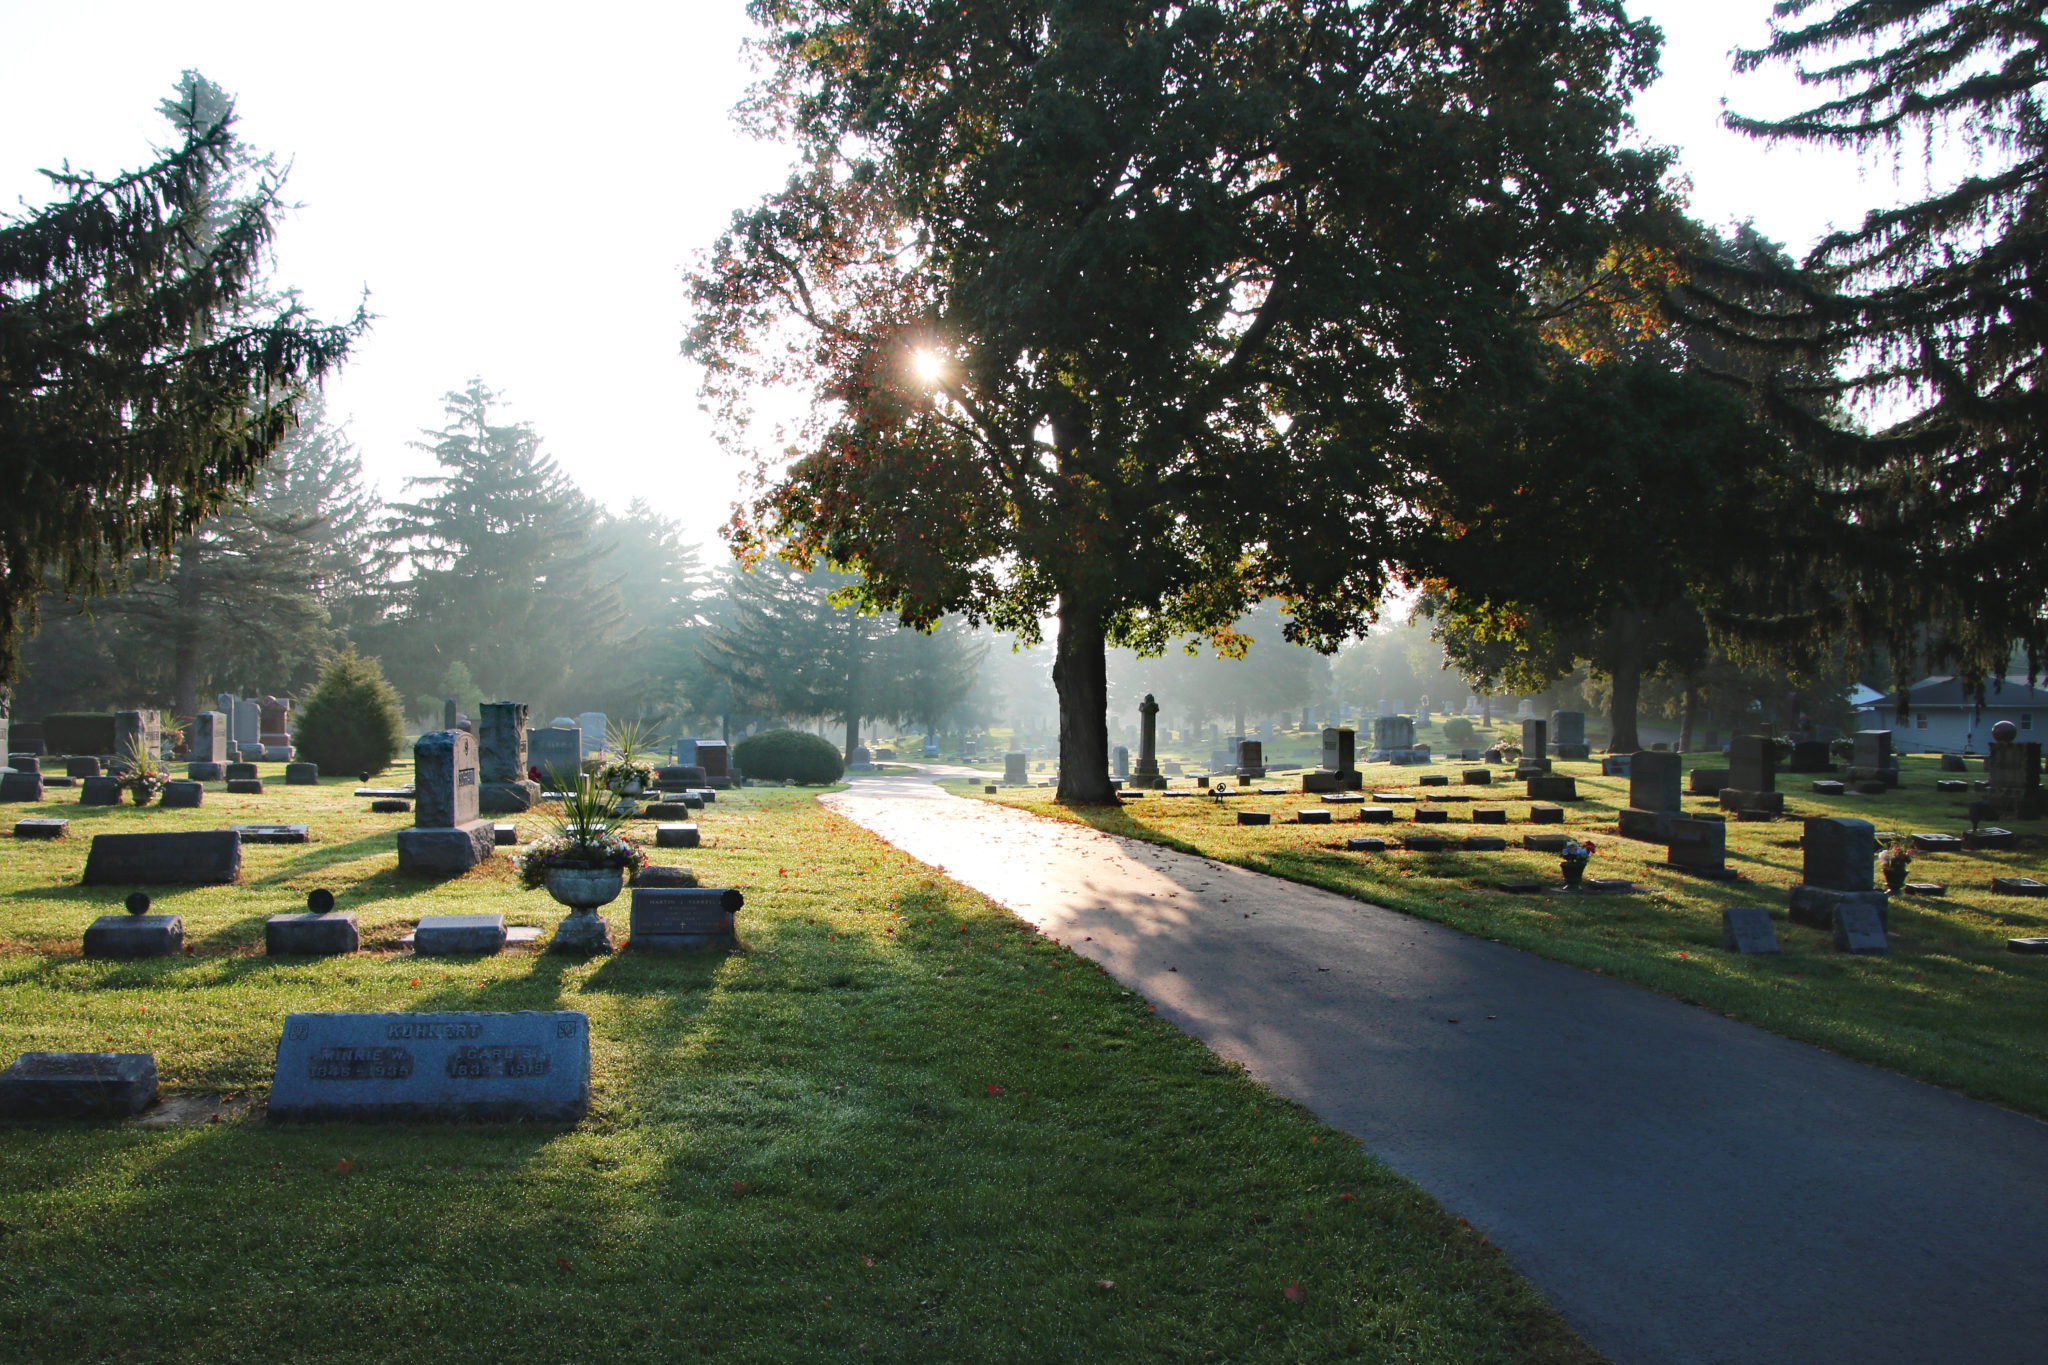 The Cemetery grounds in the morning